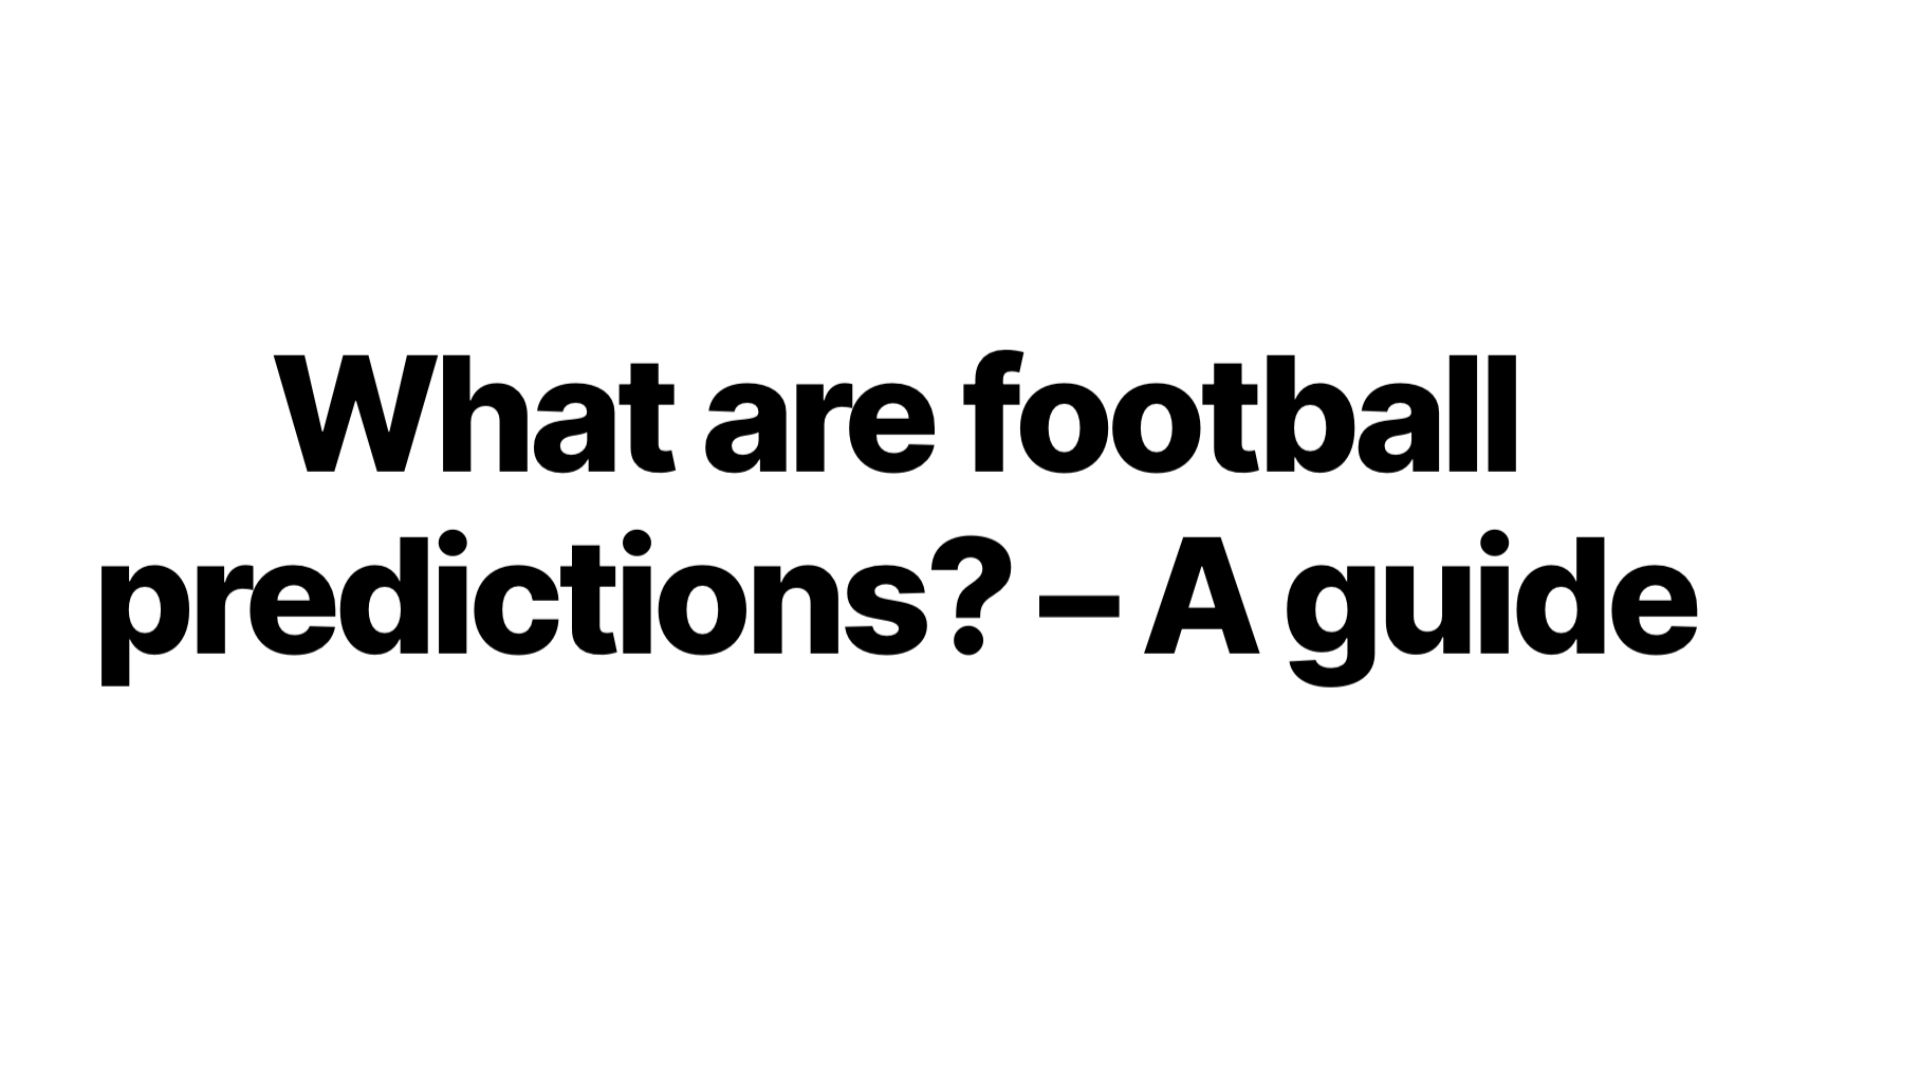 What are football predictions? - A guide